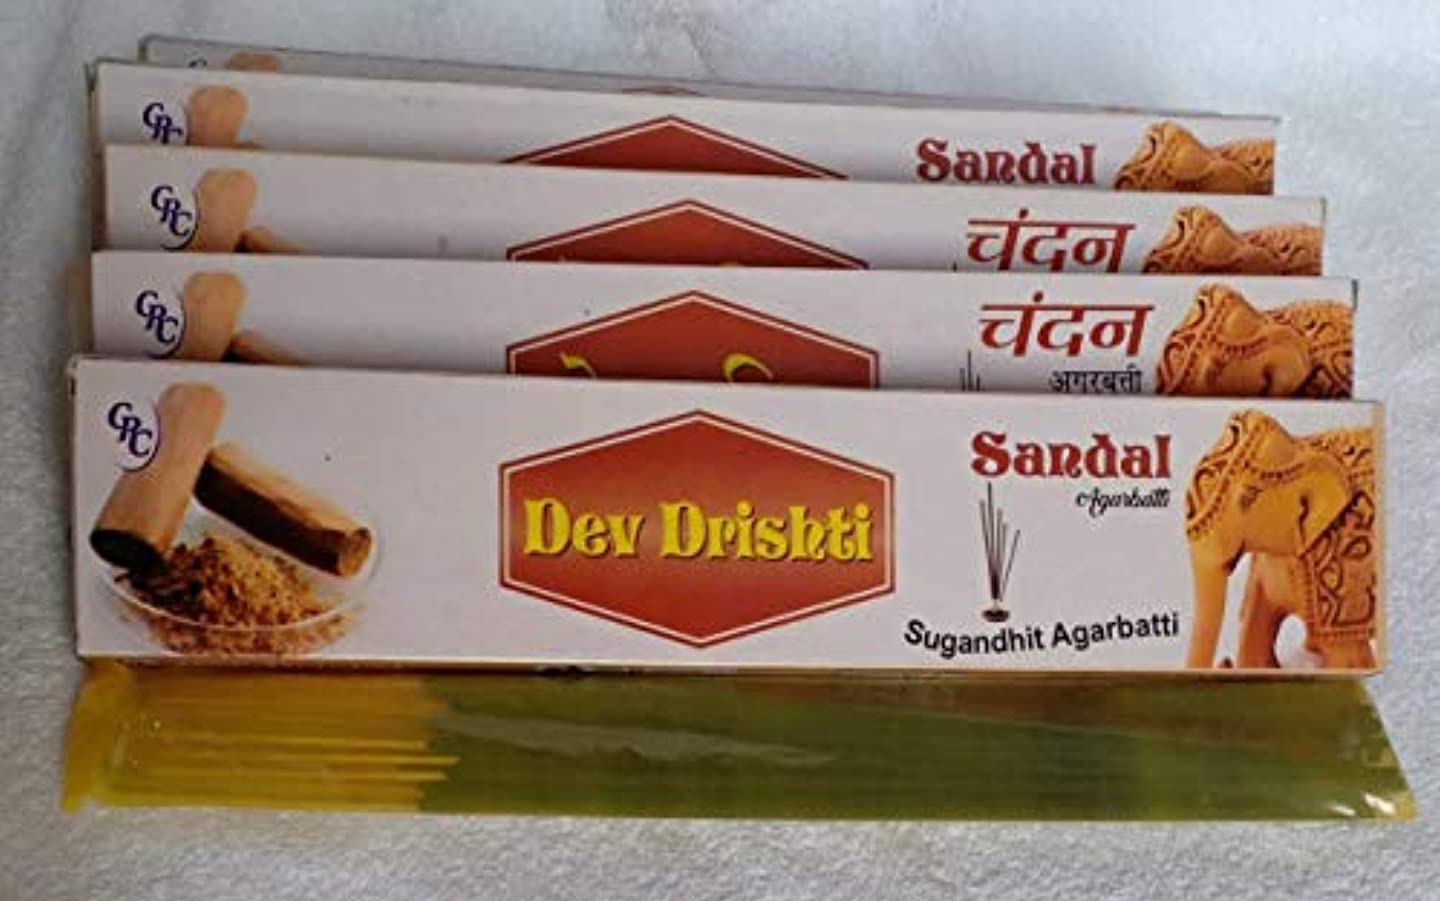 知覚する科学的故国Dev Drishti Sandal Agarbatti Pack Of 12 (Per Pack of 15 Sticks)